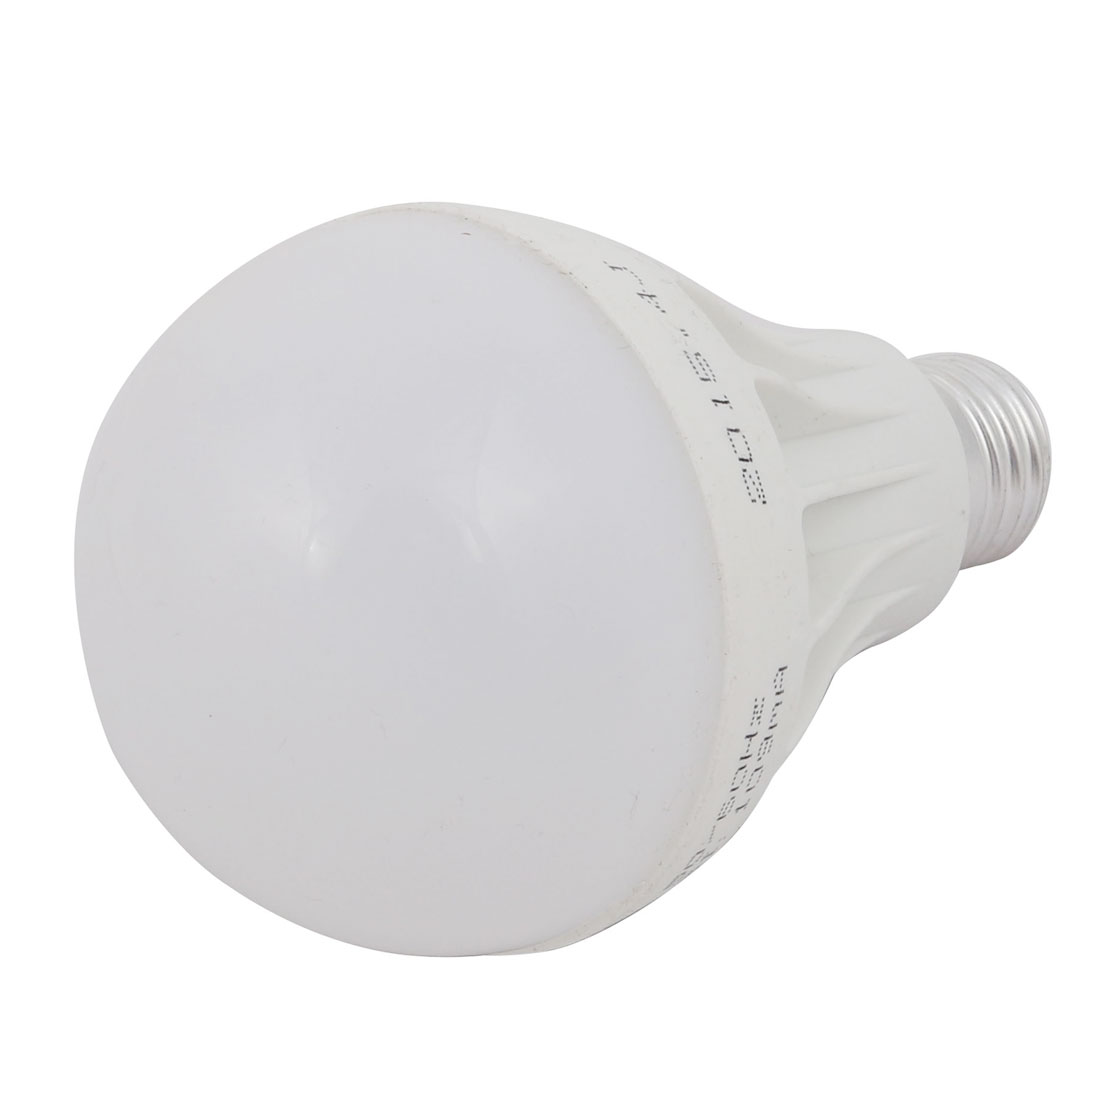 AC 170V-240V 12W LED E27 Light Bulb Lamp Energy-saving Warm White